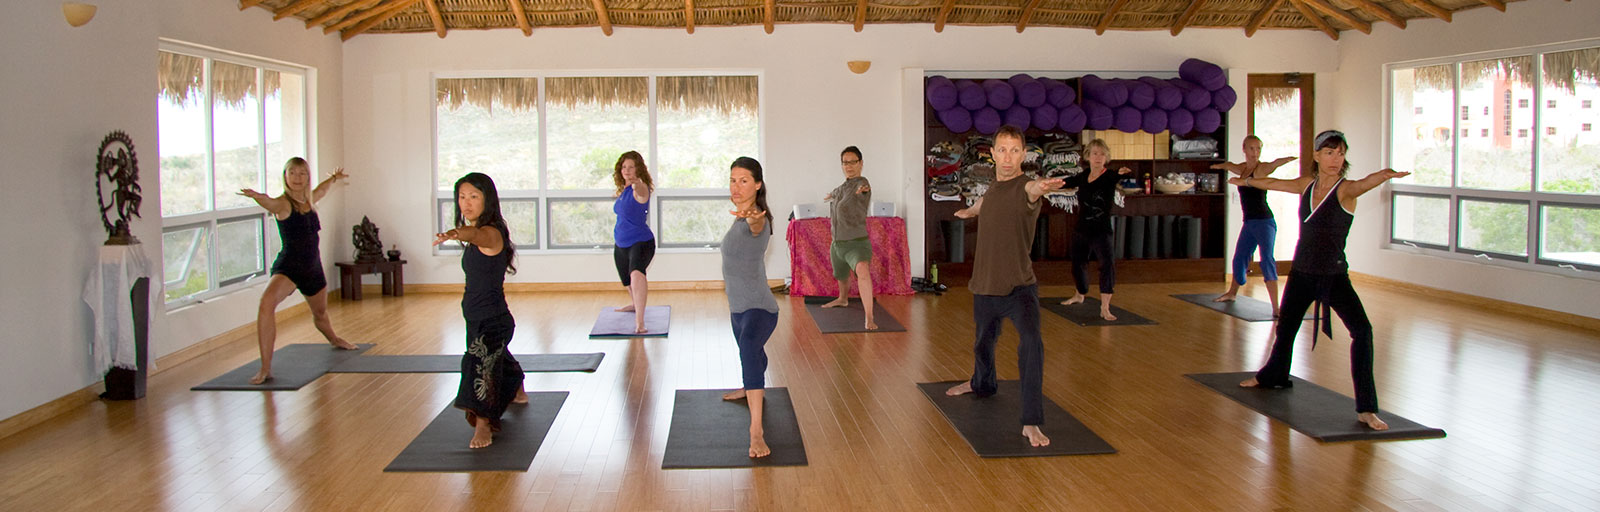 Yoga Retreat in Mexico: Yoga Class in the Sun Studio